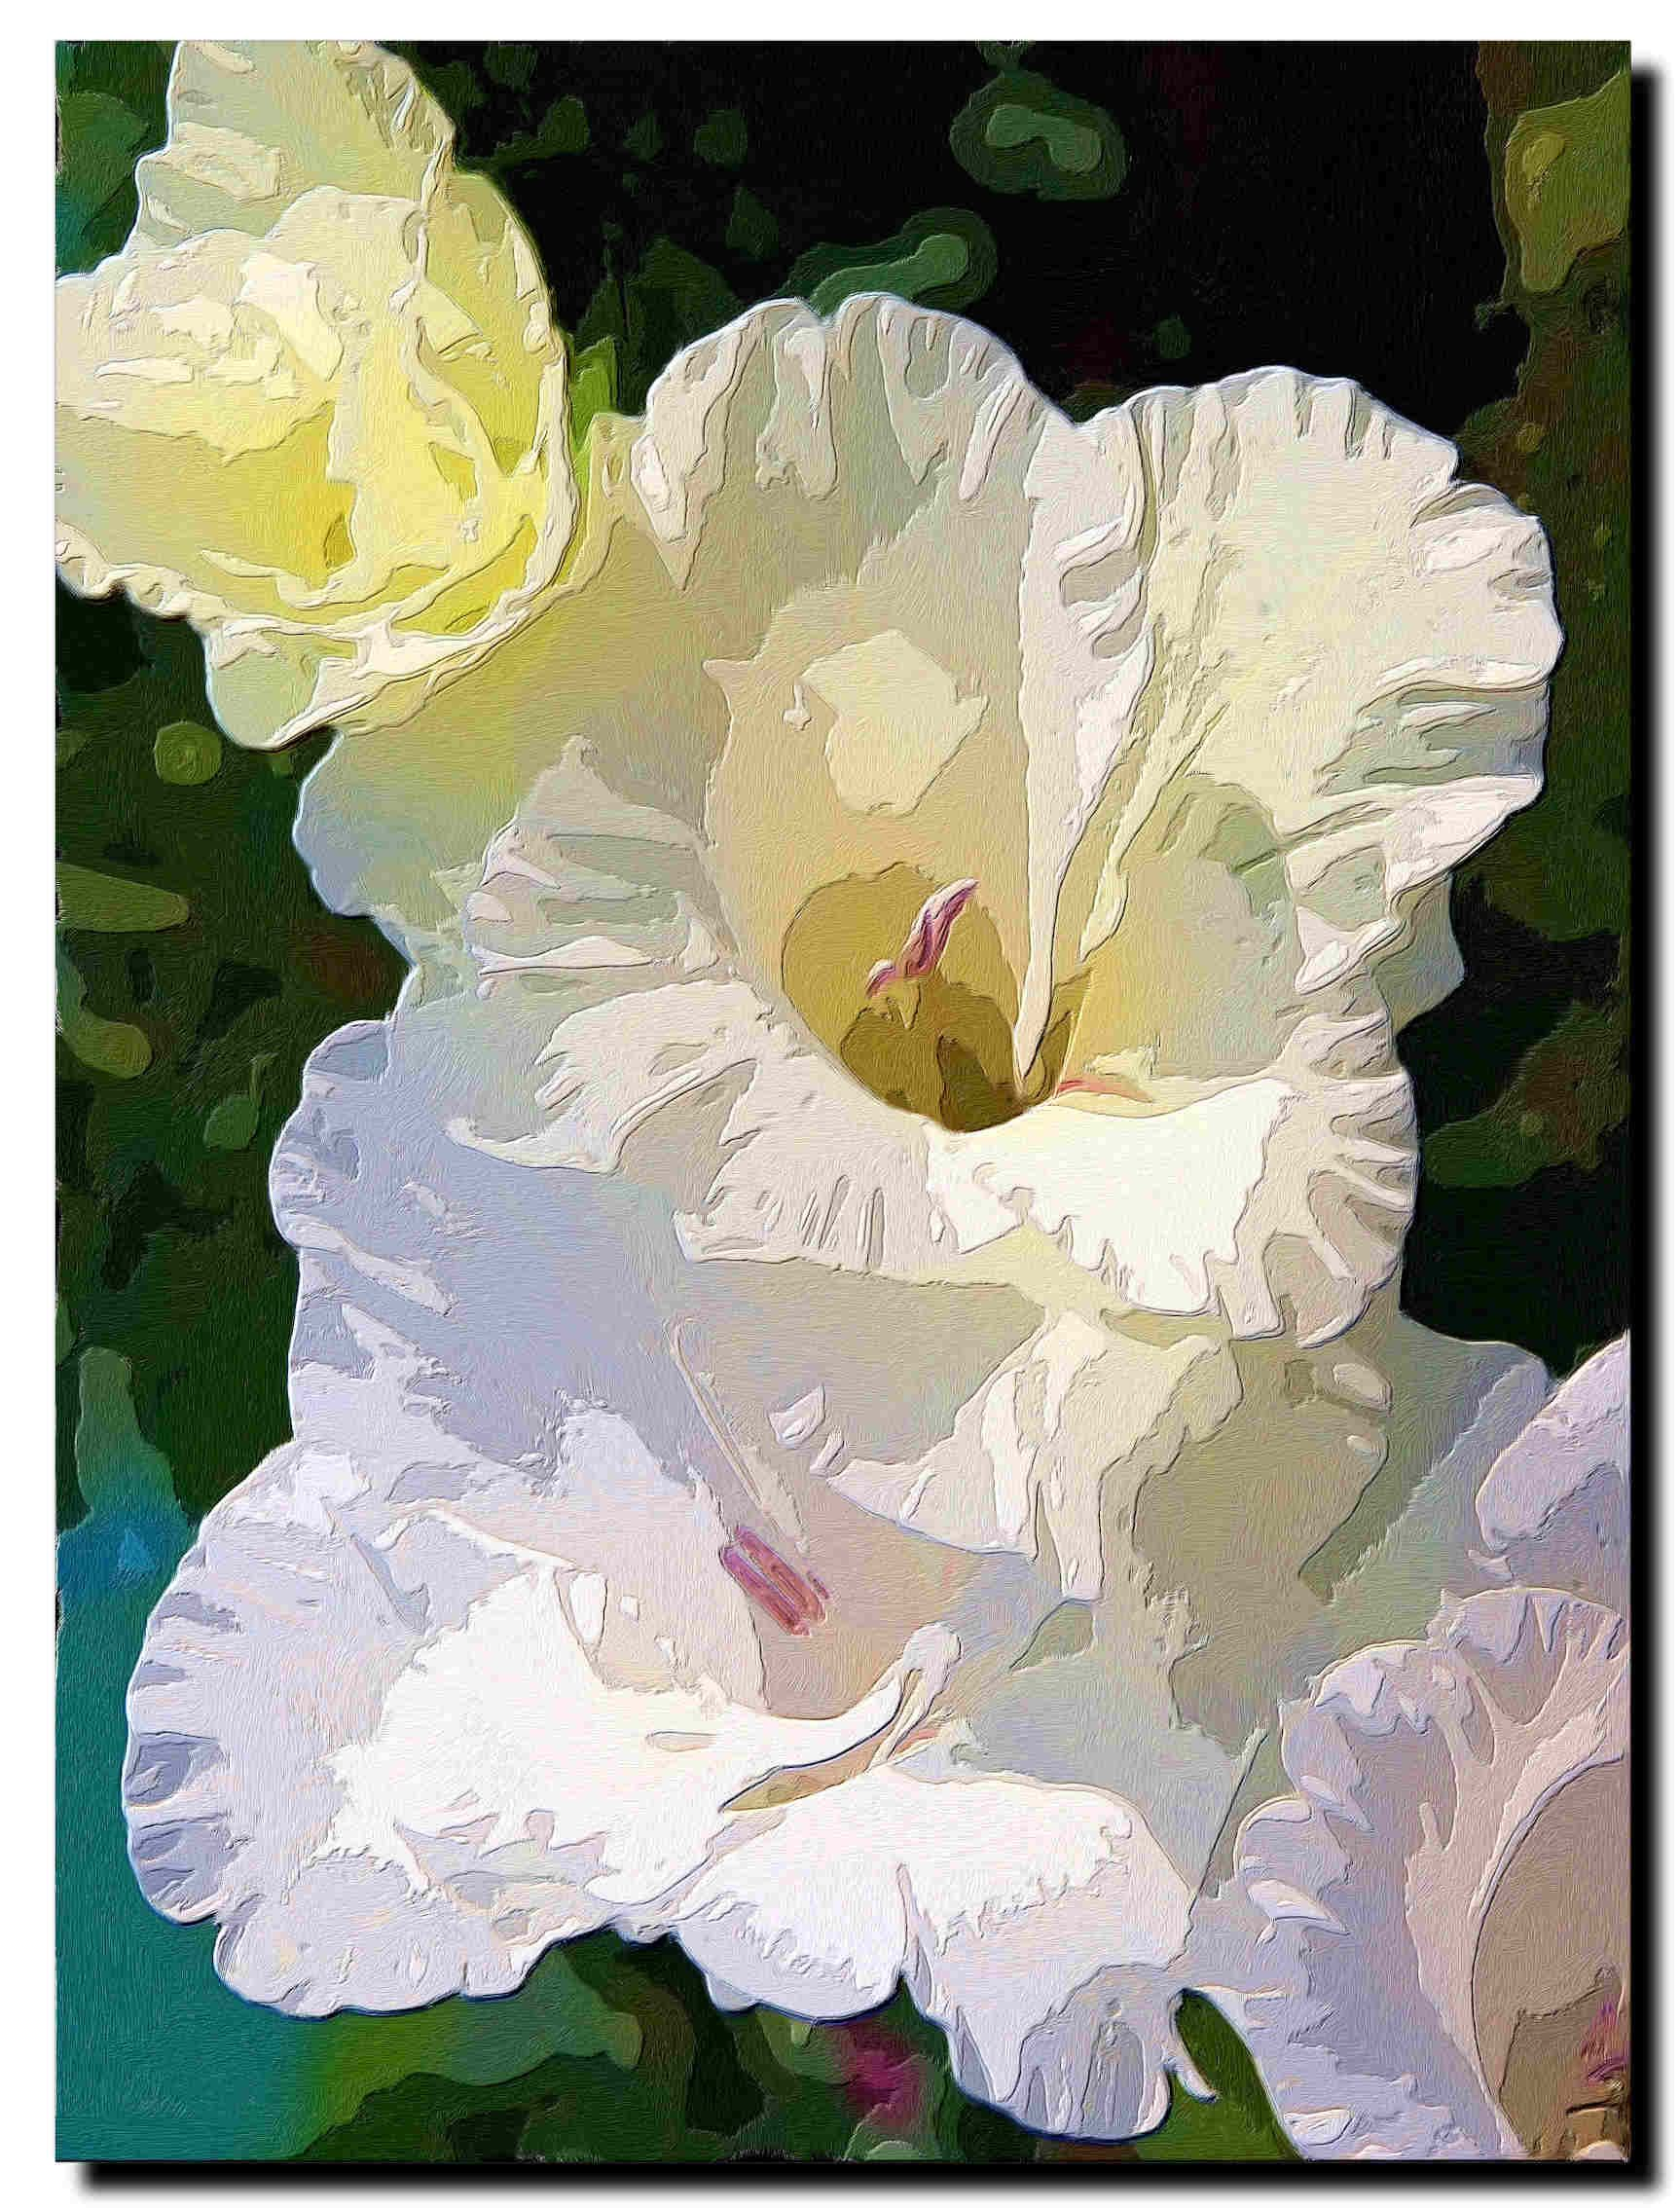 Gladiolus a la georgia okeeffe show your essentials creations gladiolus a la georgia okeeffe show your essentials creations mightylinksfo